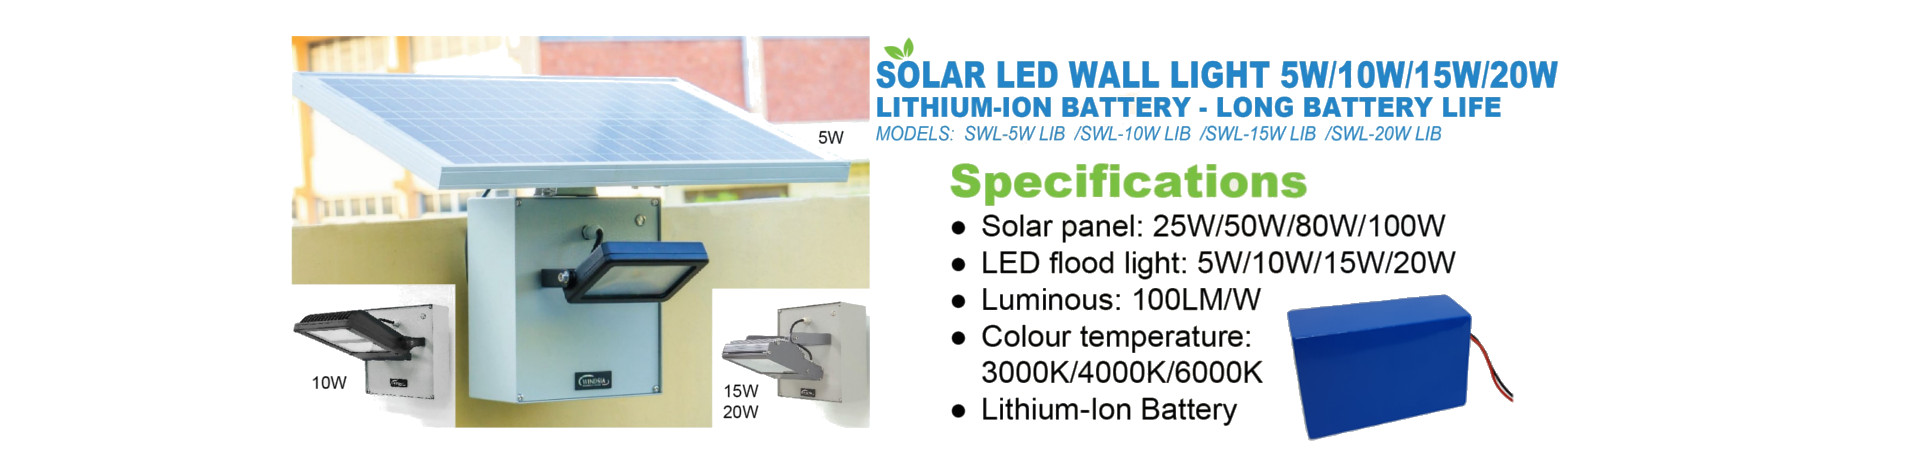 Solar Wall Light With Lithium Batteries